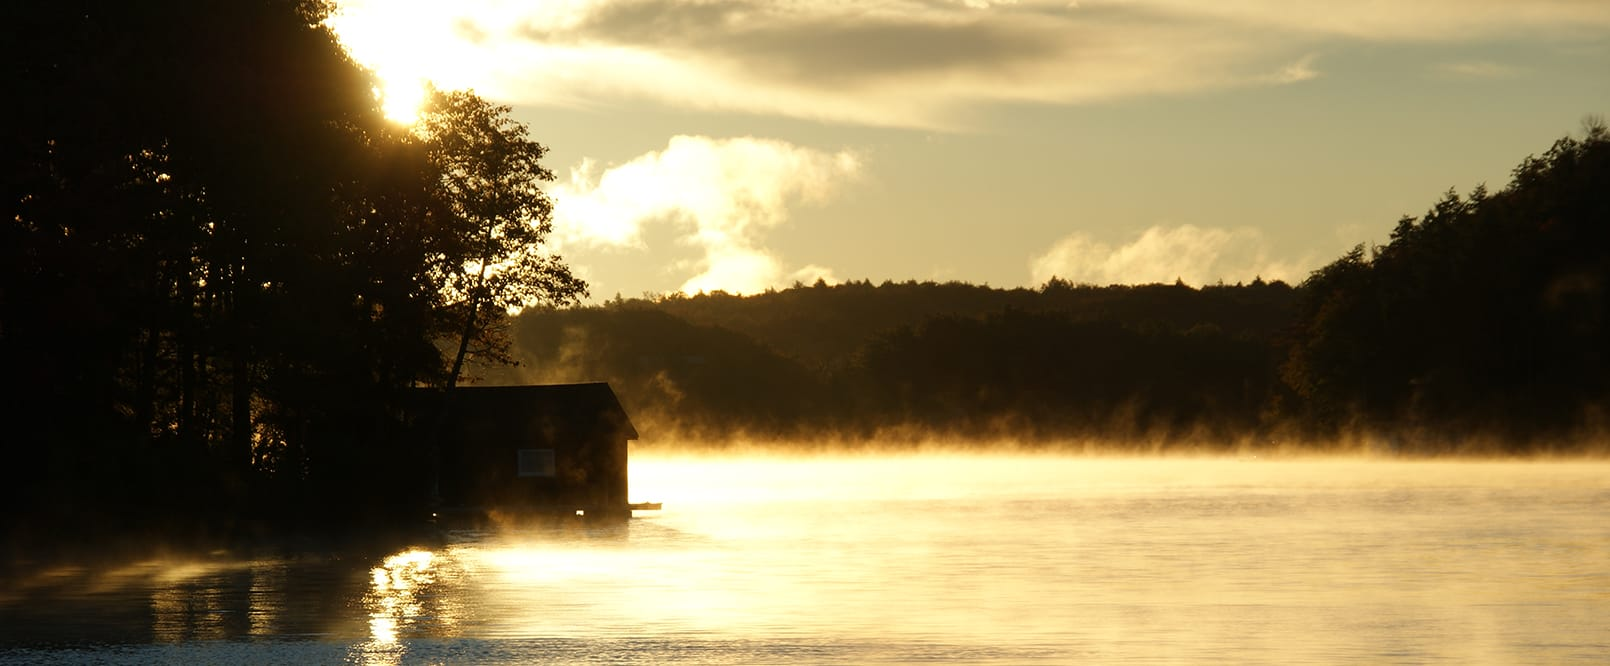 Morning Lake with mist